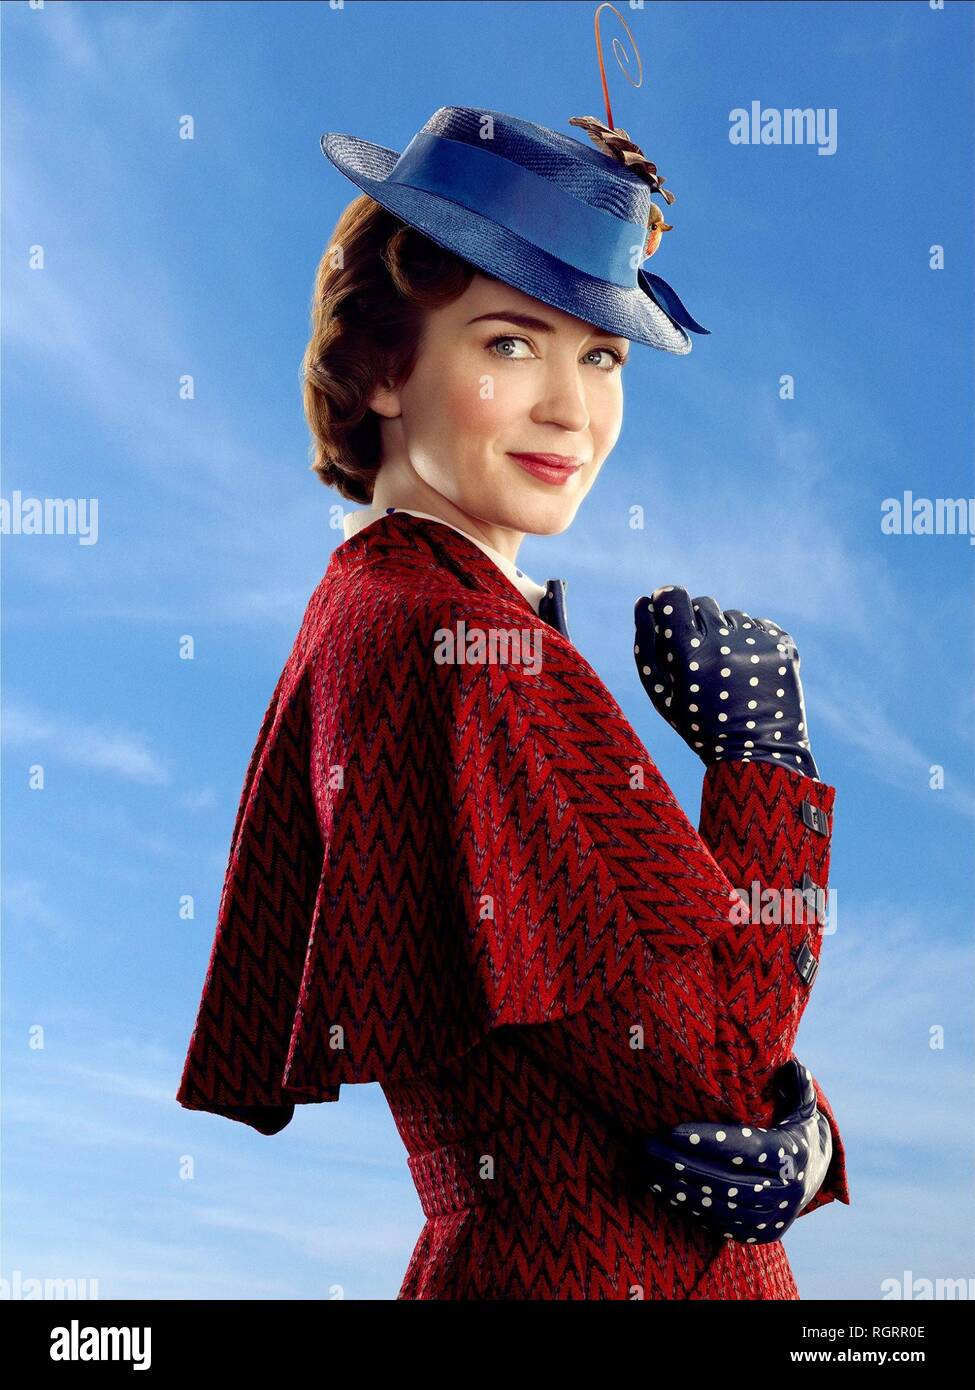 MARY POPPINS RETURNS, EMILY BLUNT, 2018 - Stock Image